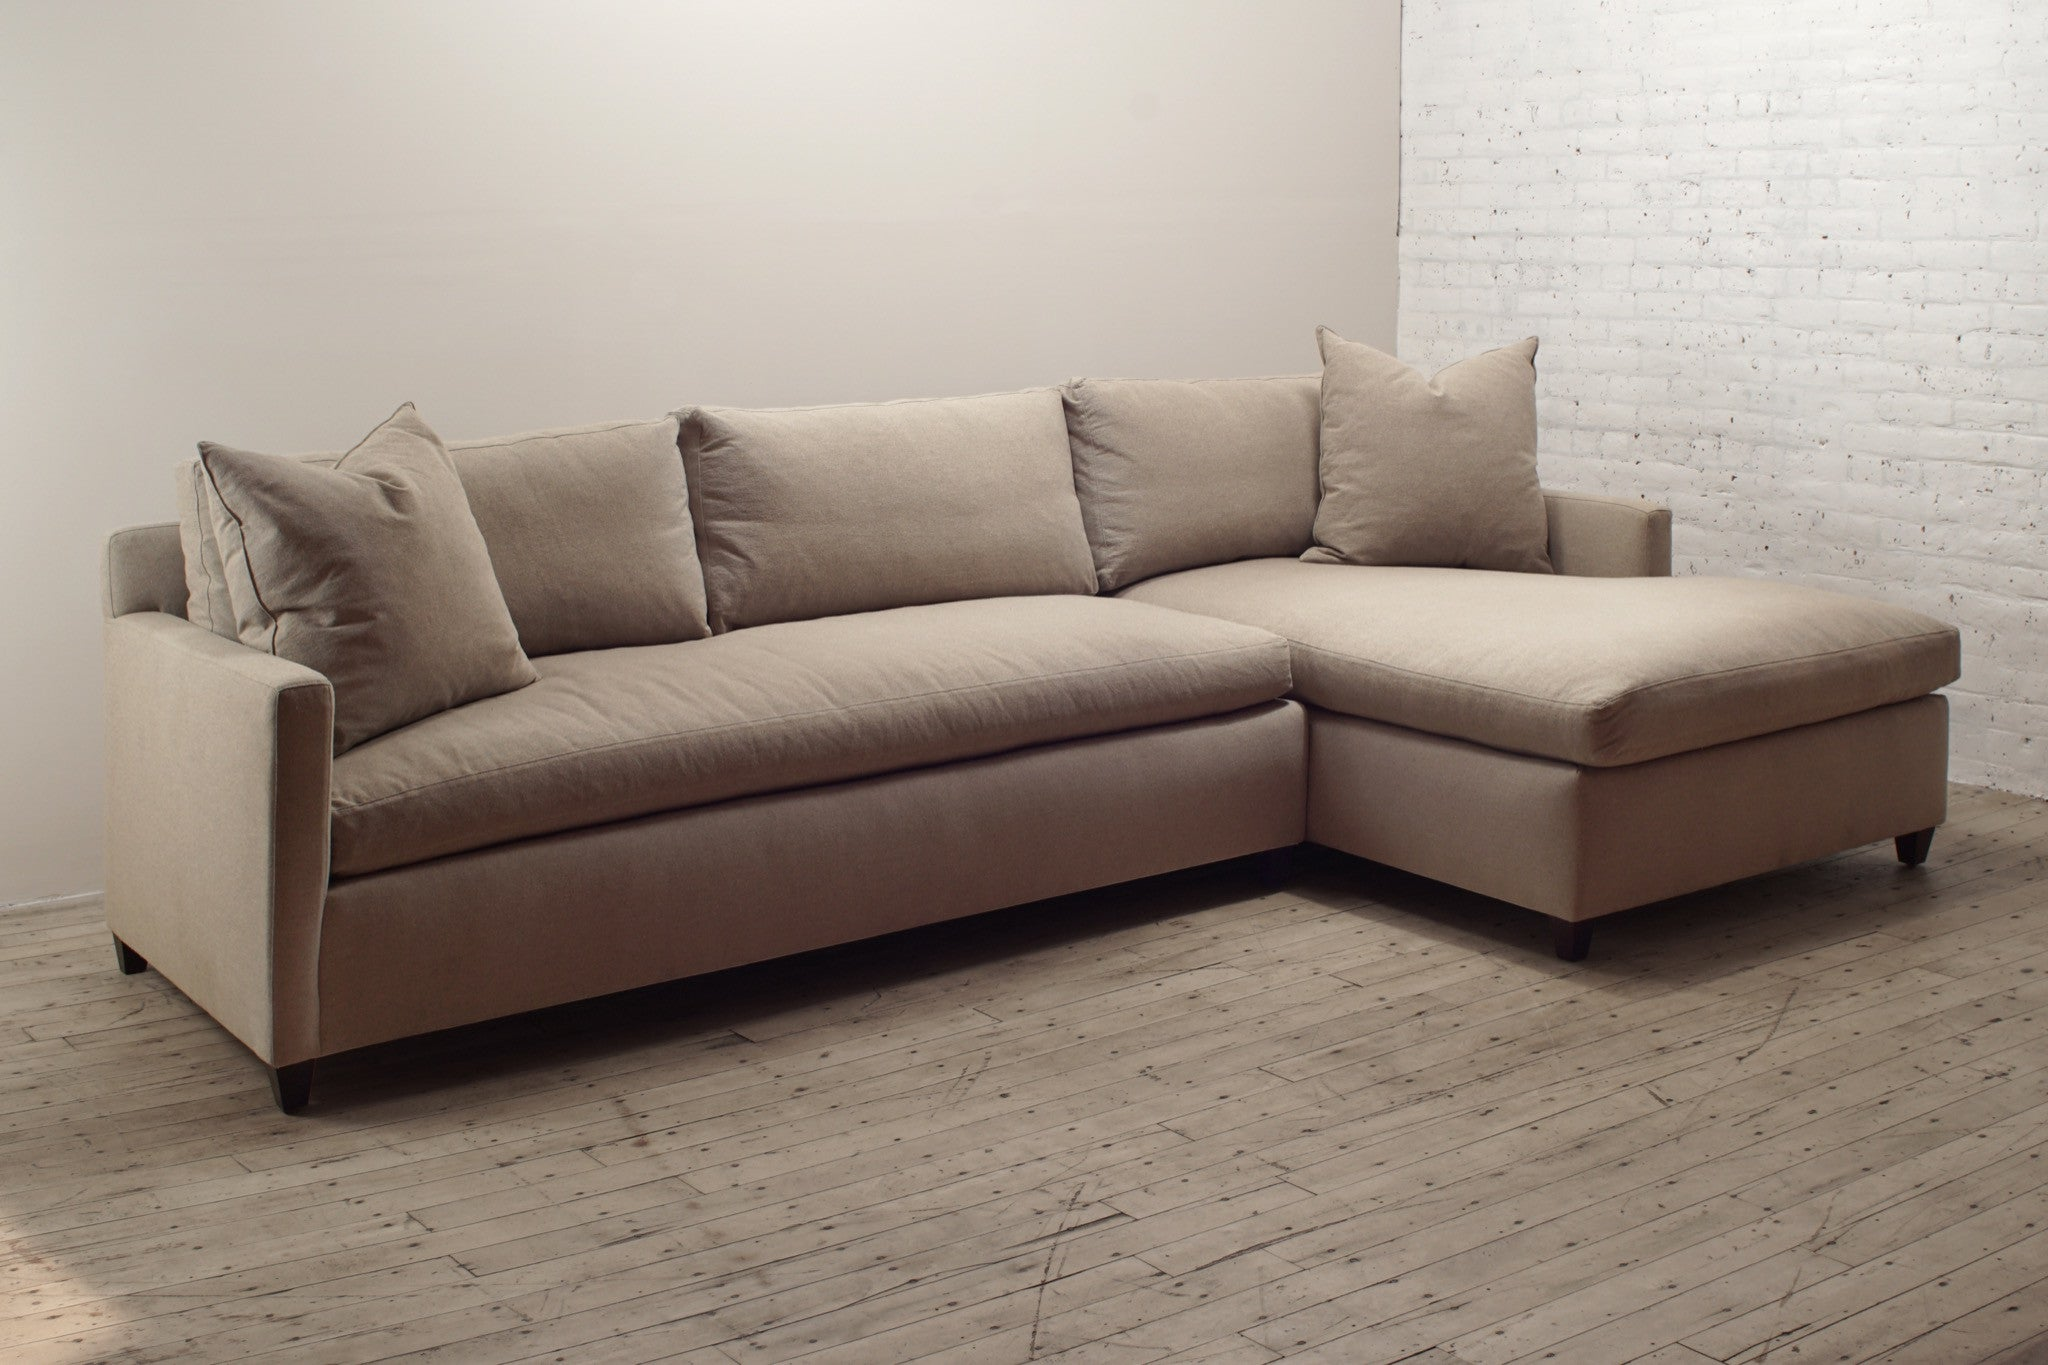 Louis 2pc Sectional – from the source